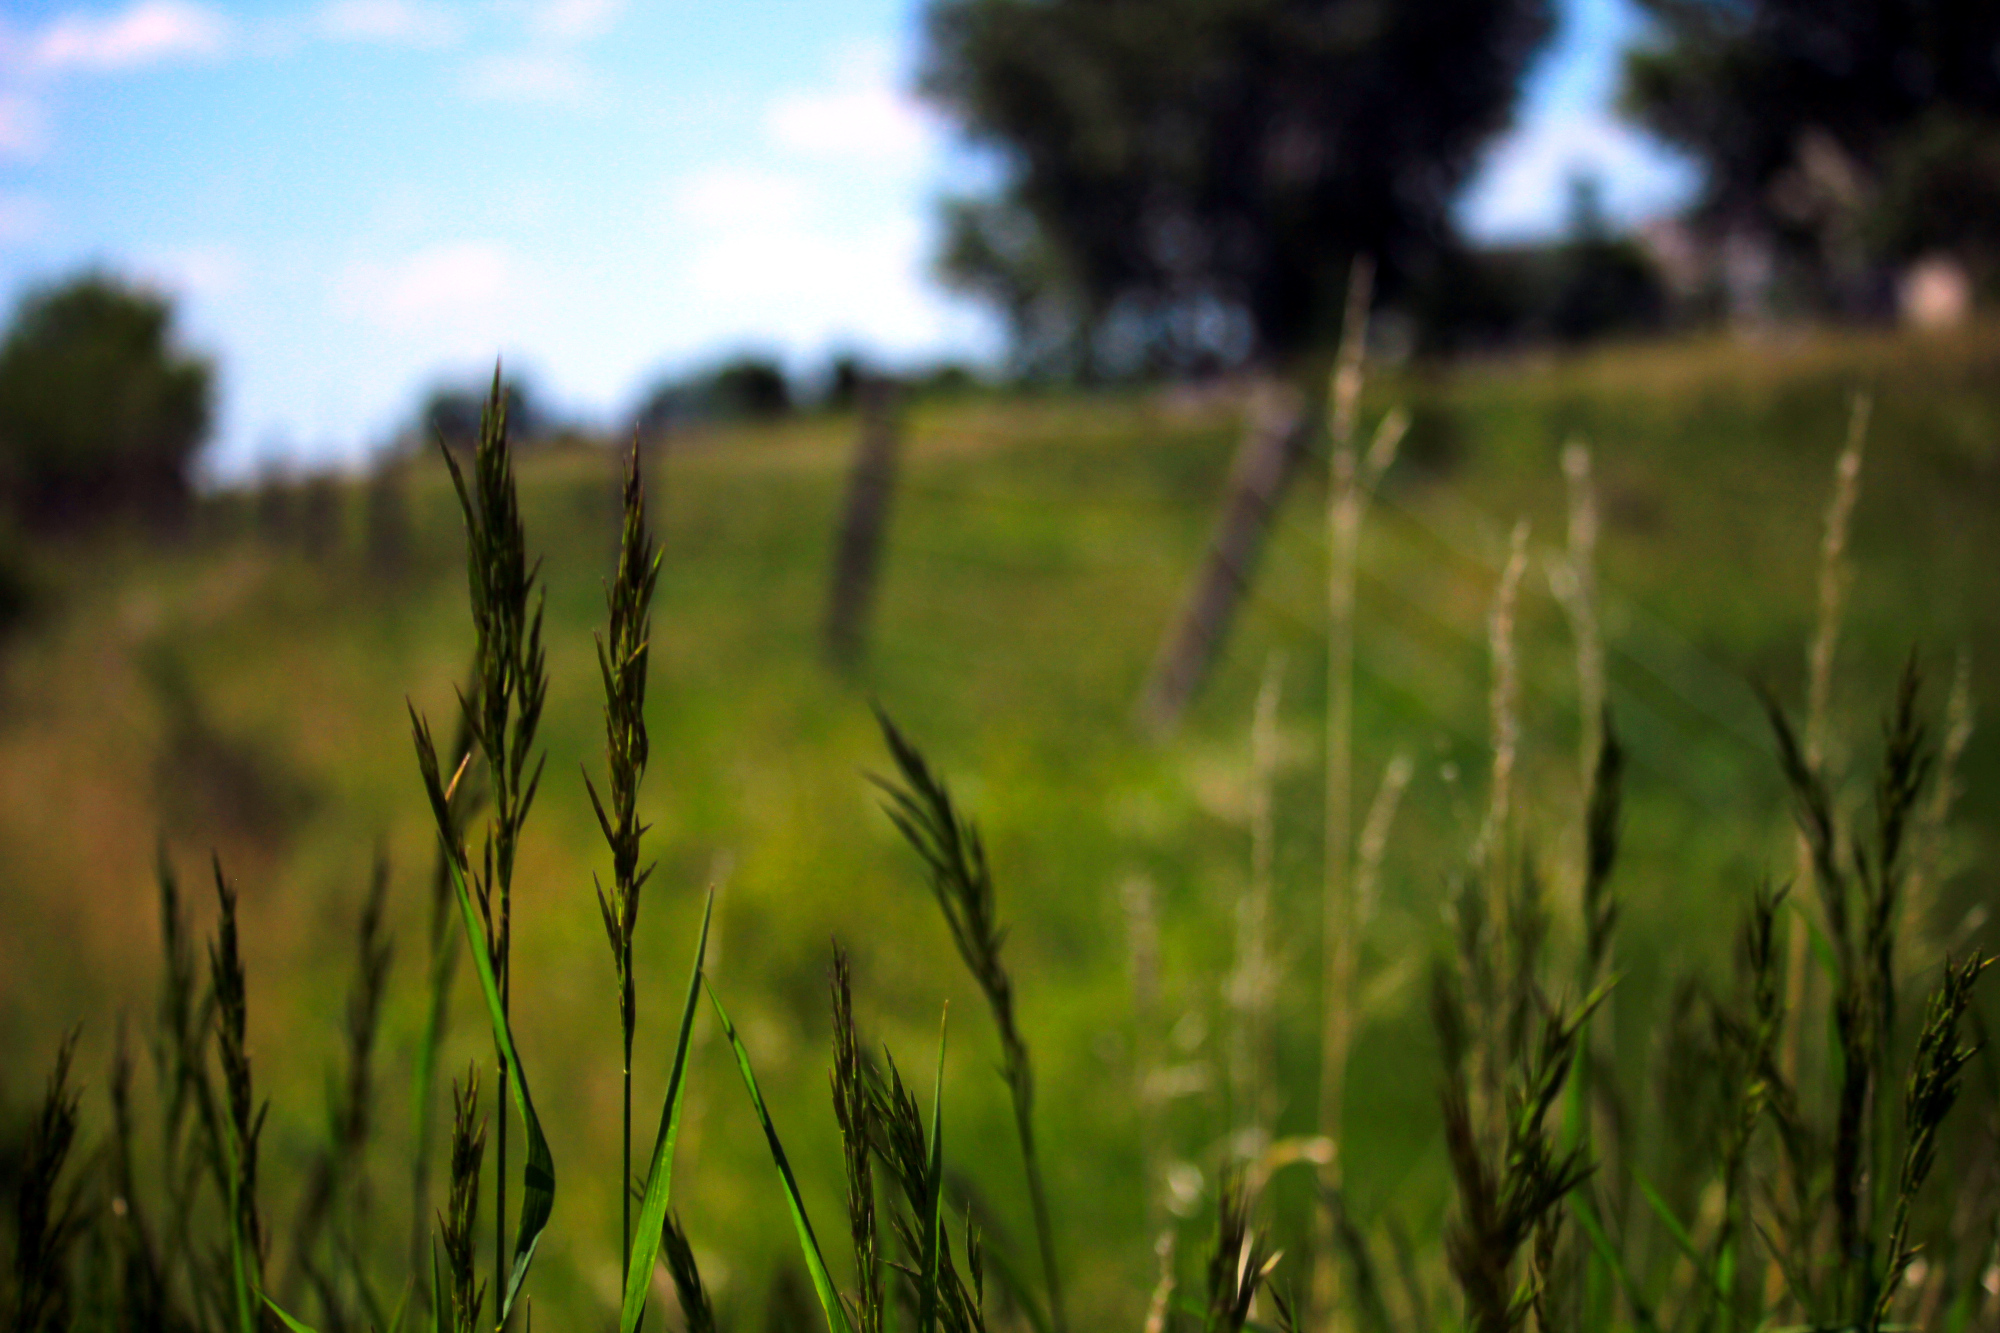 Blades of grass in focus, with the fence blurred